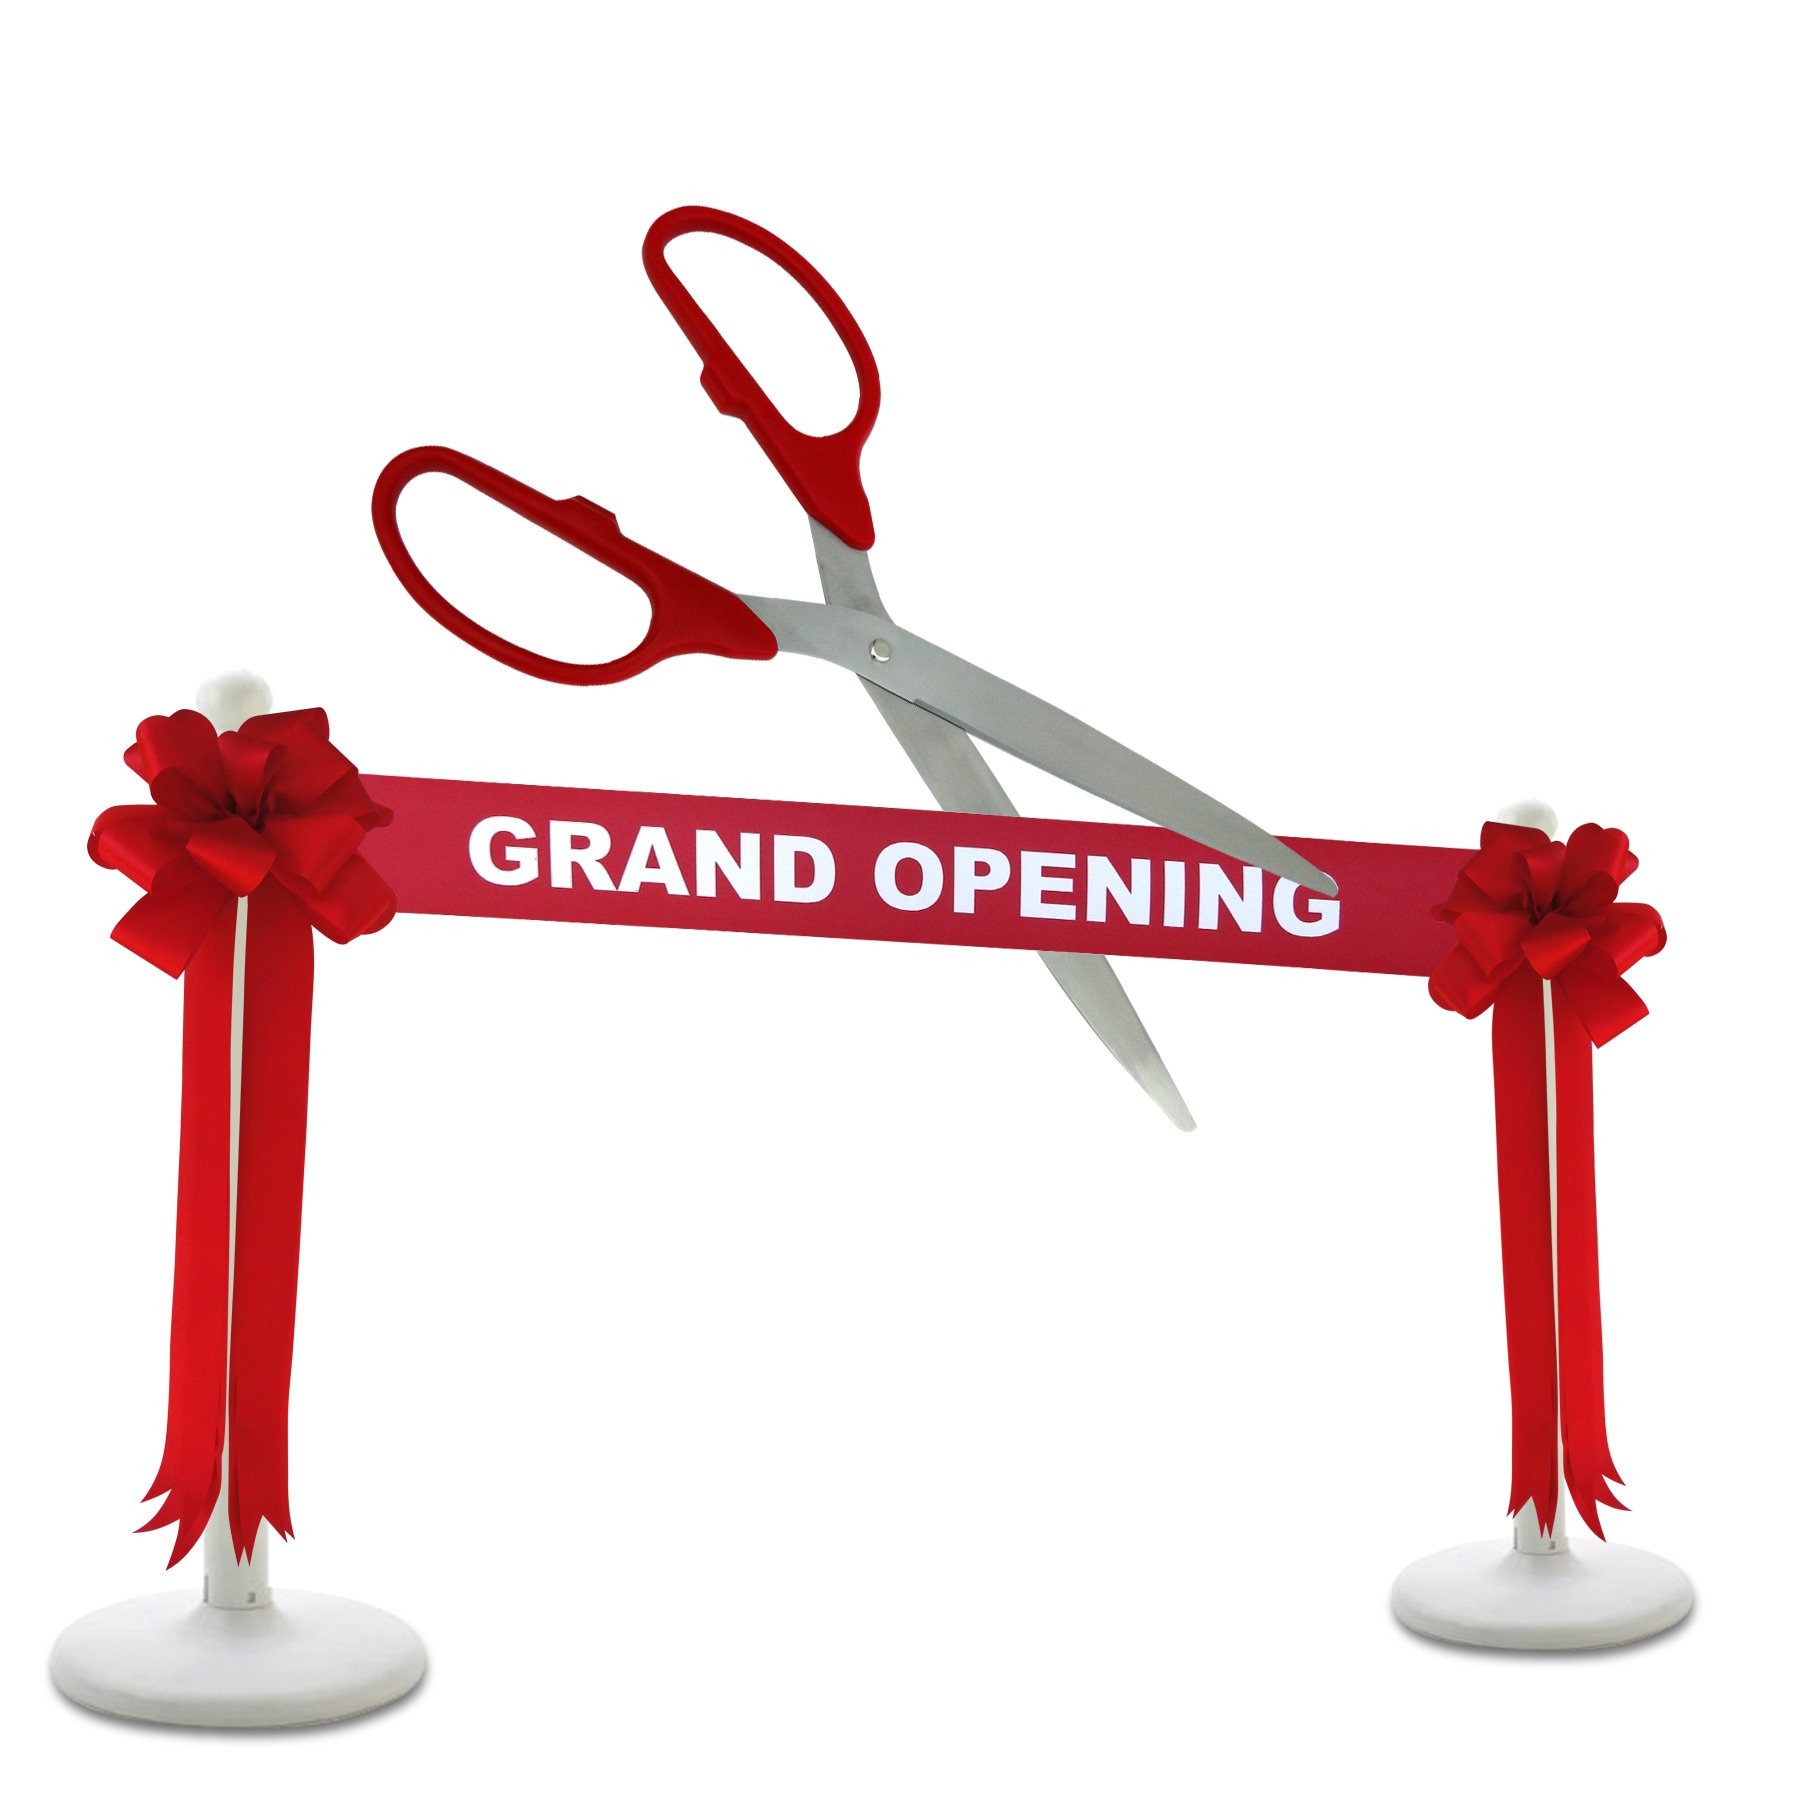 Deluxe Grand Opening Kit - 36'' Red/Silver Ceremonial Ribbon Cutting Scissors with 5 Yards of 6'' Red Grand Opening Ribbon, 2 Red Bows and 2 White Plastic Stanchions